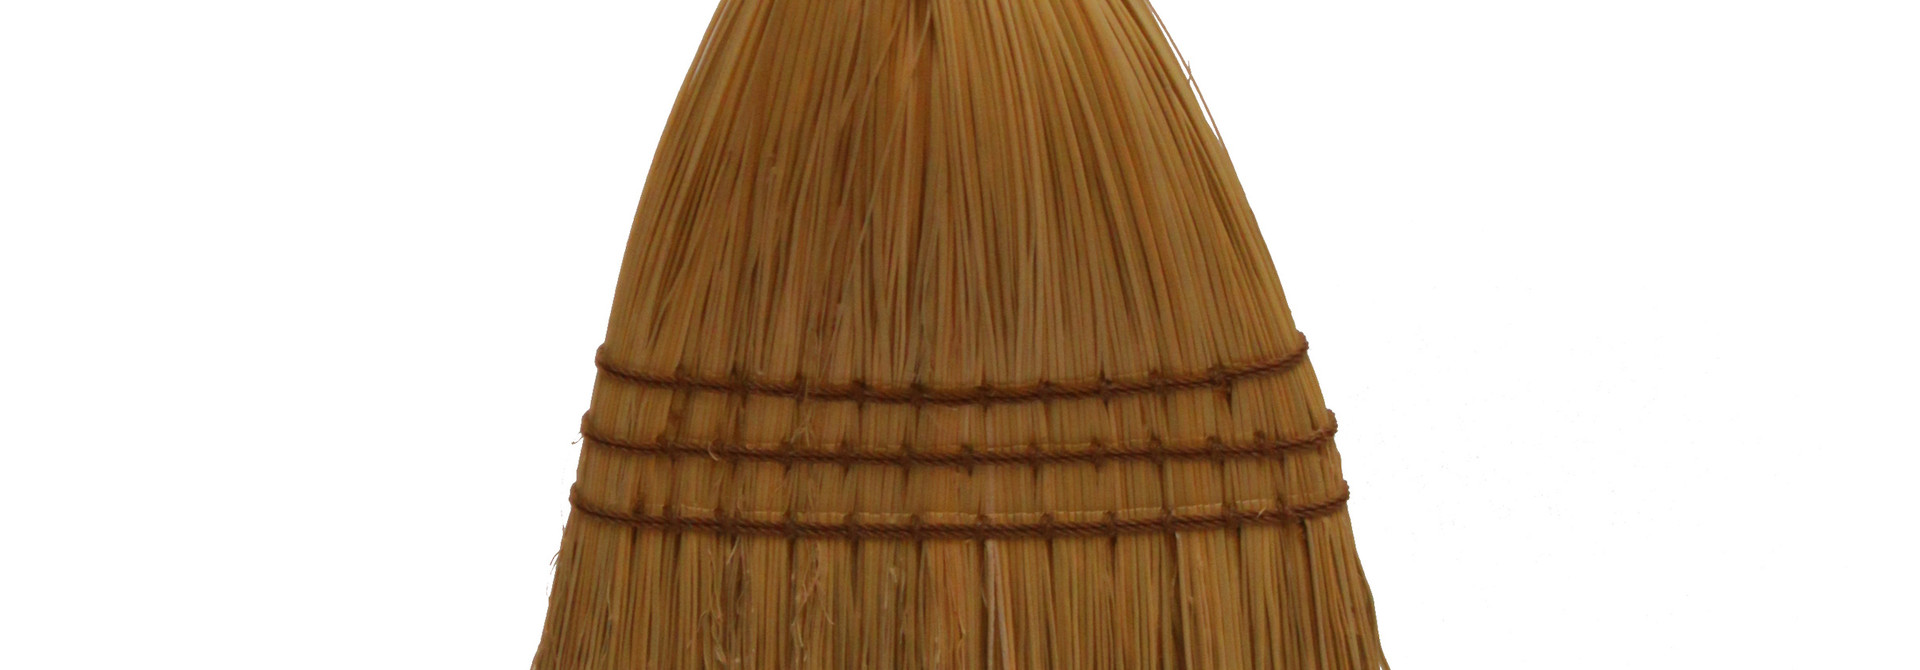 Shaker Braid Broom - Turned Handle